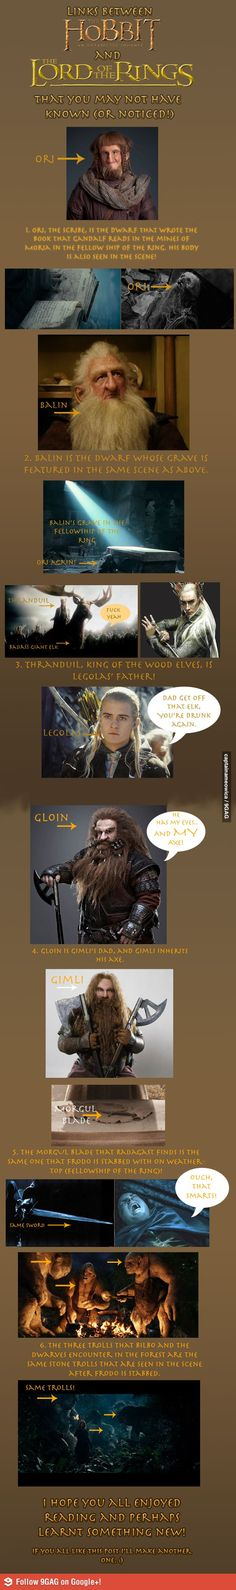 Mind blown!! Though I knew about Gloin and Gimli :)